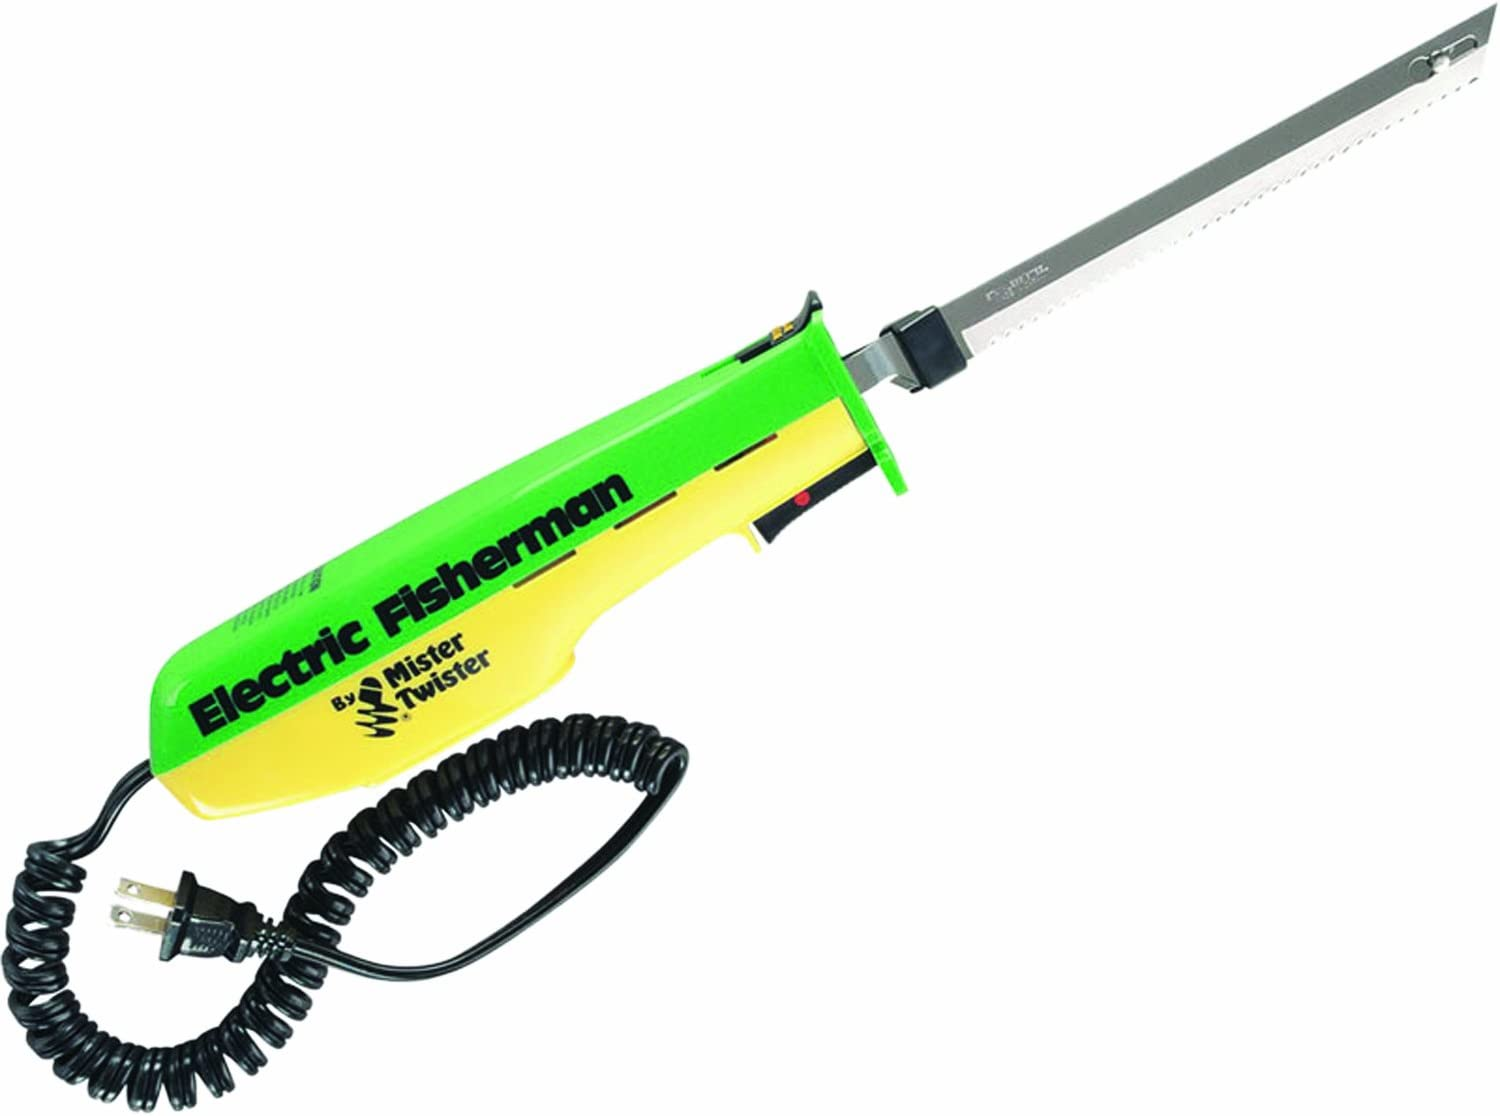 Mister Twister 120V Electric Knife Green / Yellow with Black Cord